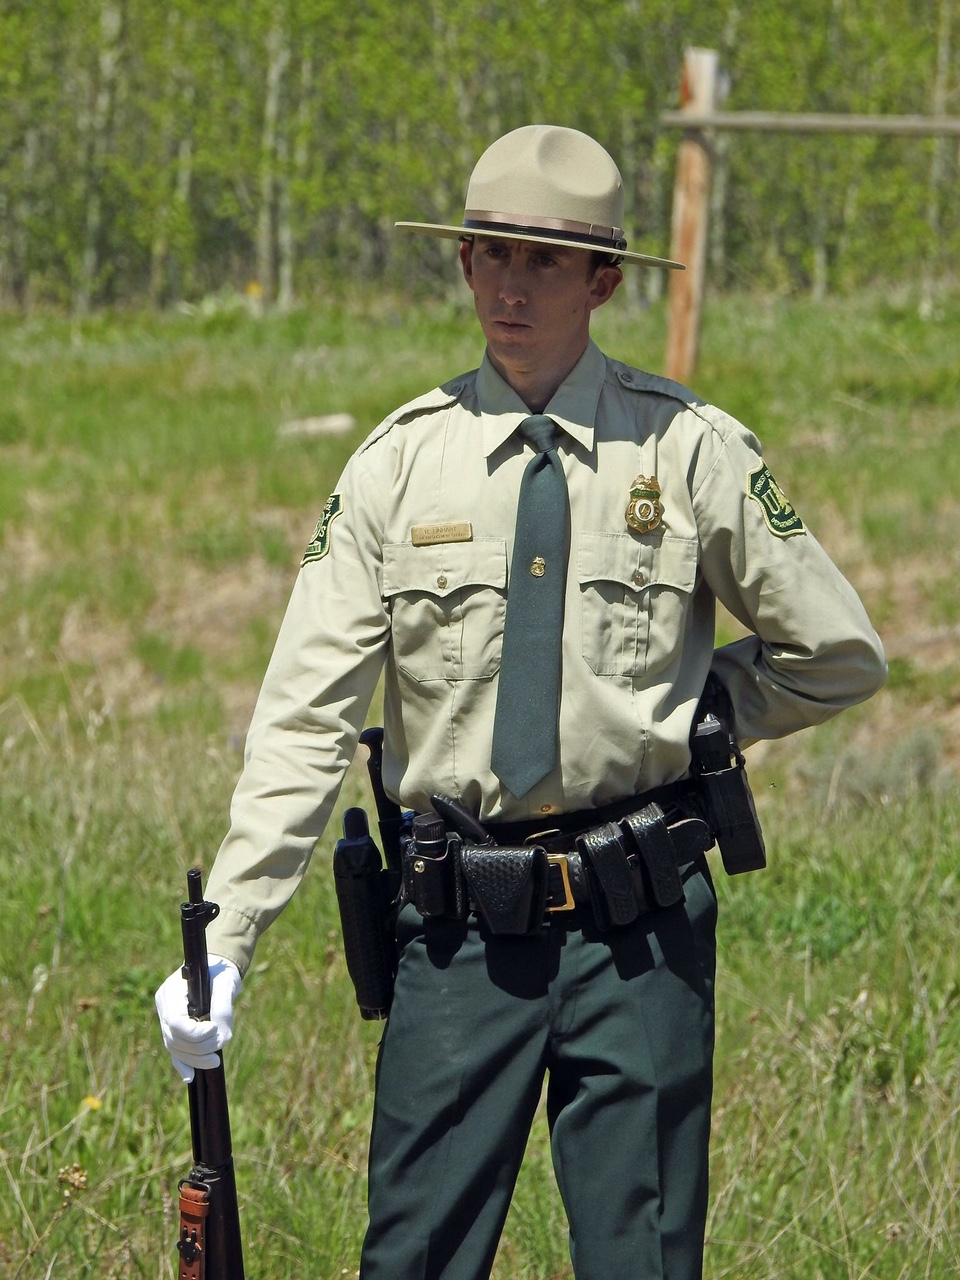 The marine service uniform is worn with either a barracks cover, which has a bill and a round top, or a garrison cover, which comes to a peak. Meet Ryan Linhart Us Forest Service